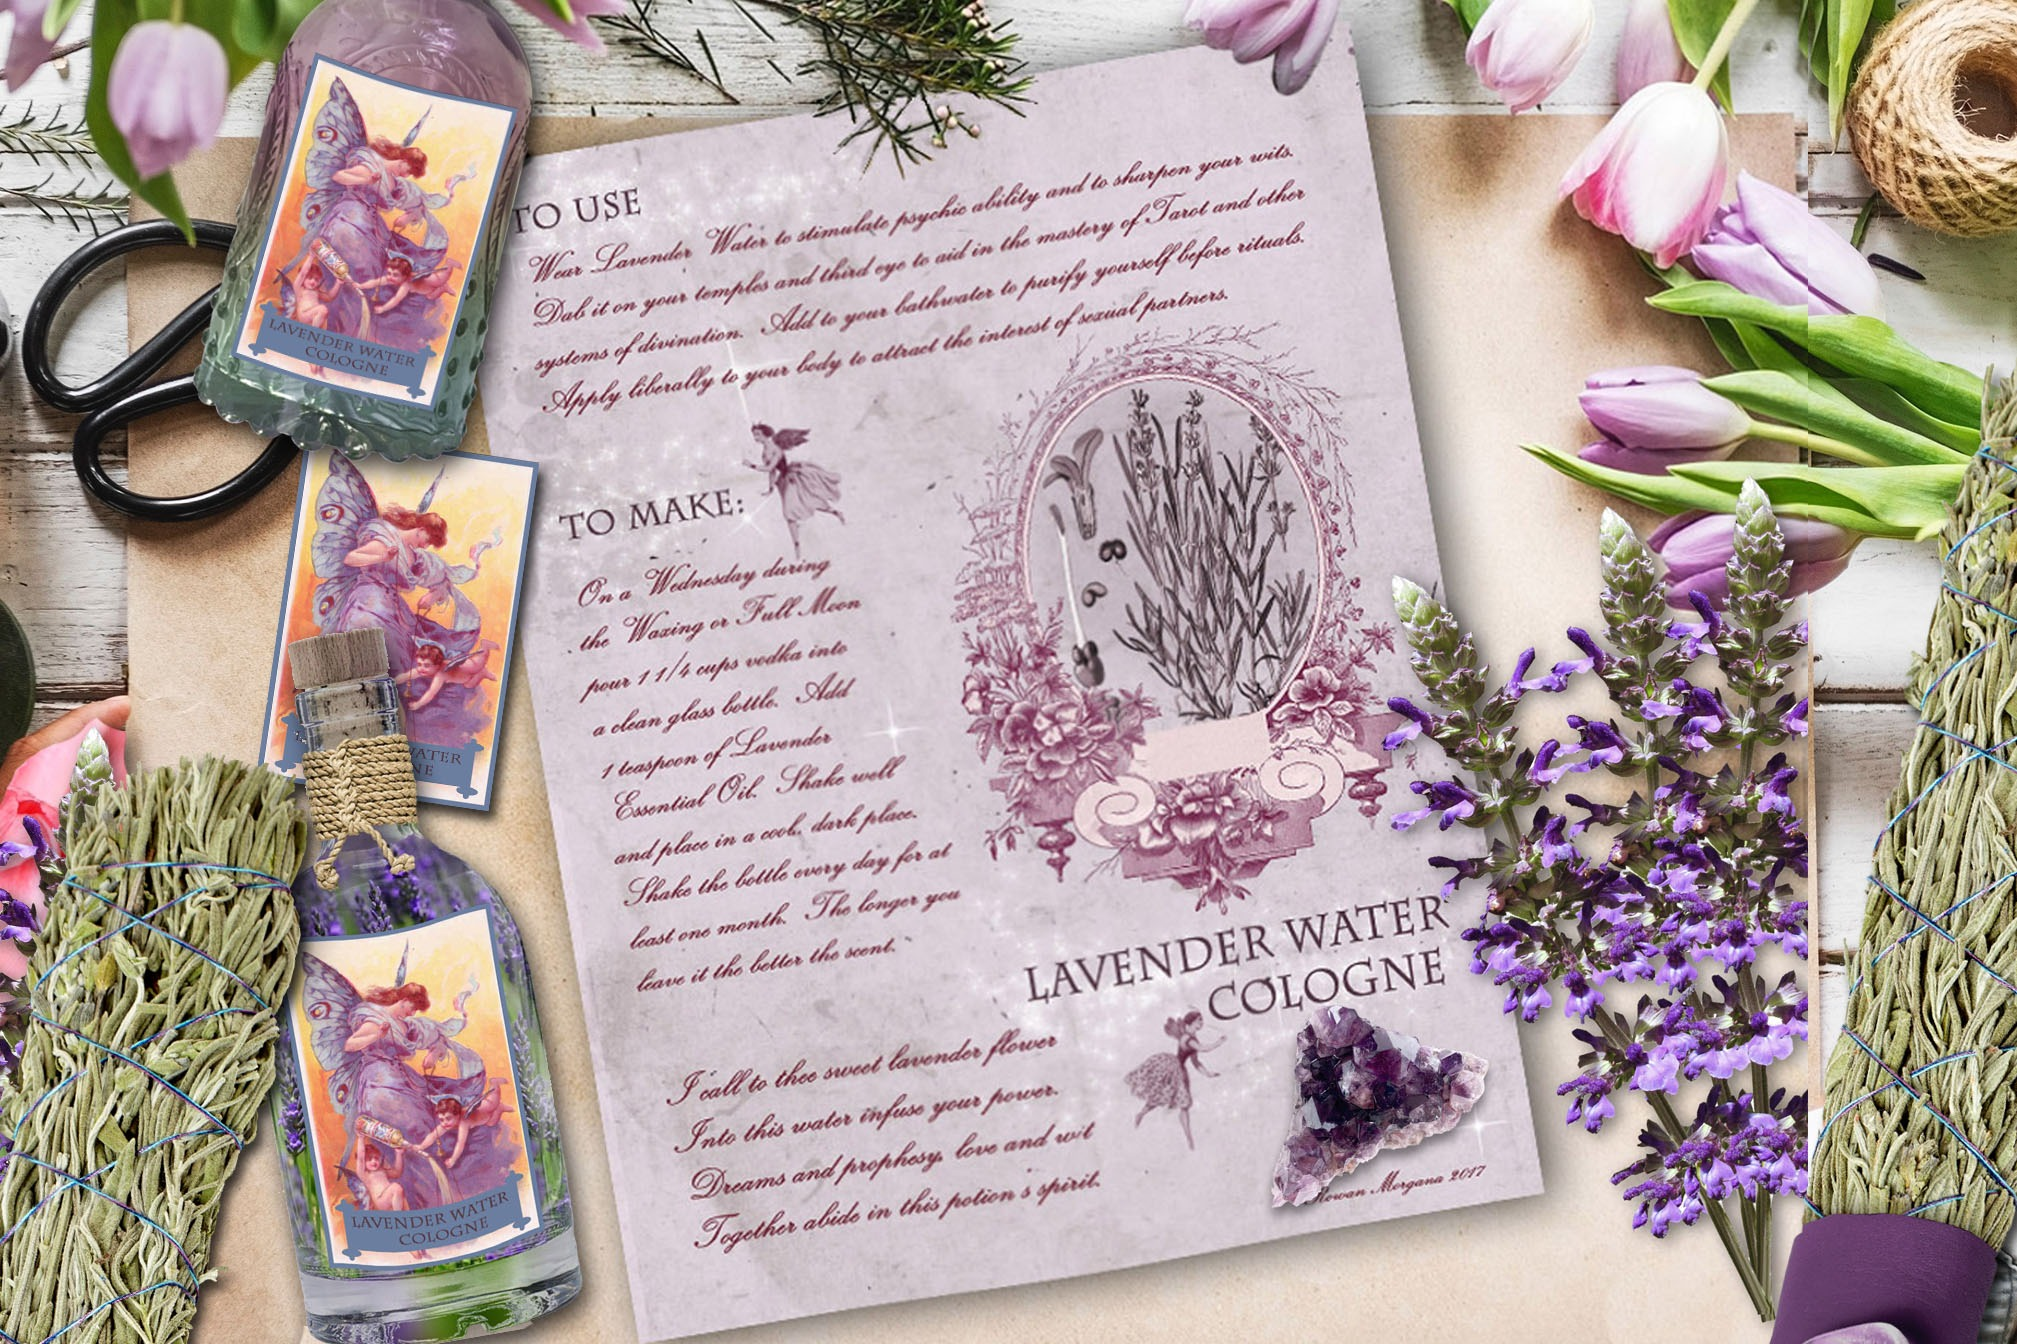 LAVENDER WATER COLOGNE  Recipe & Label Sheet